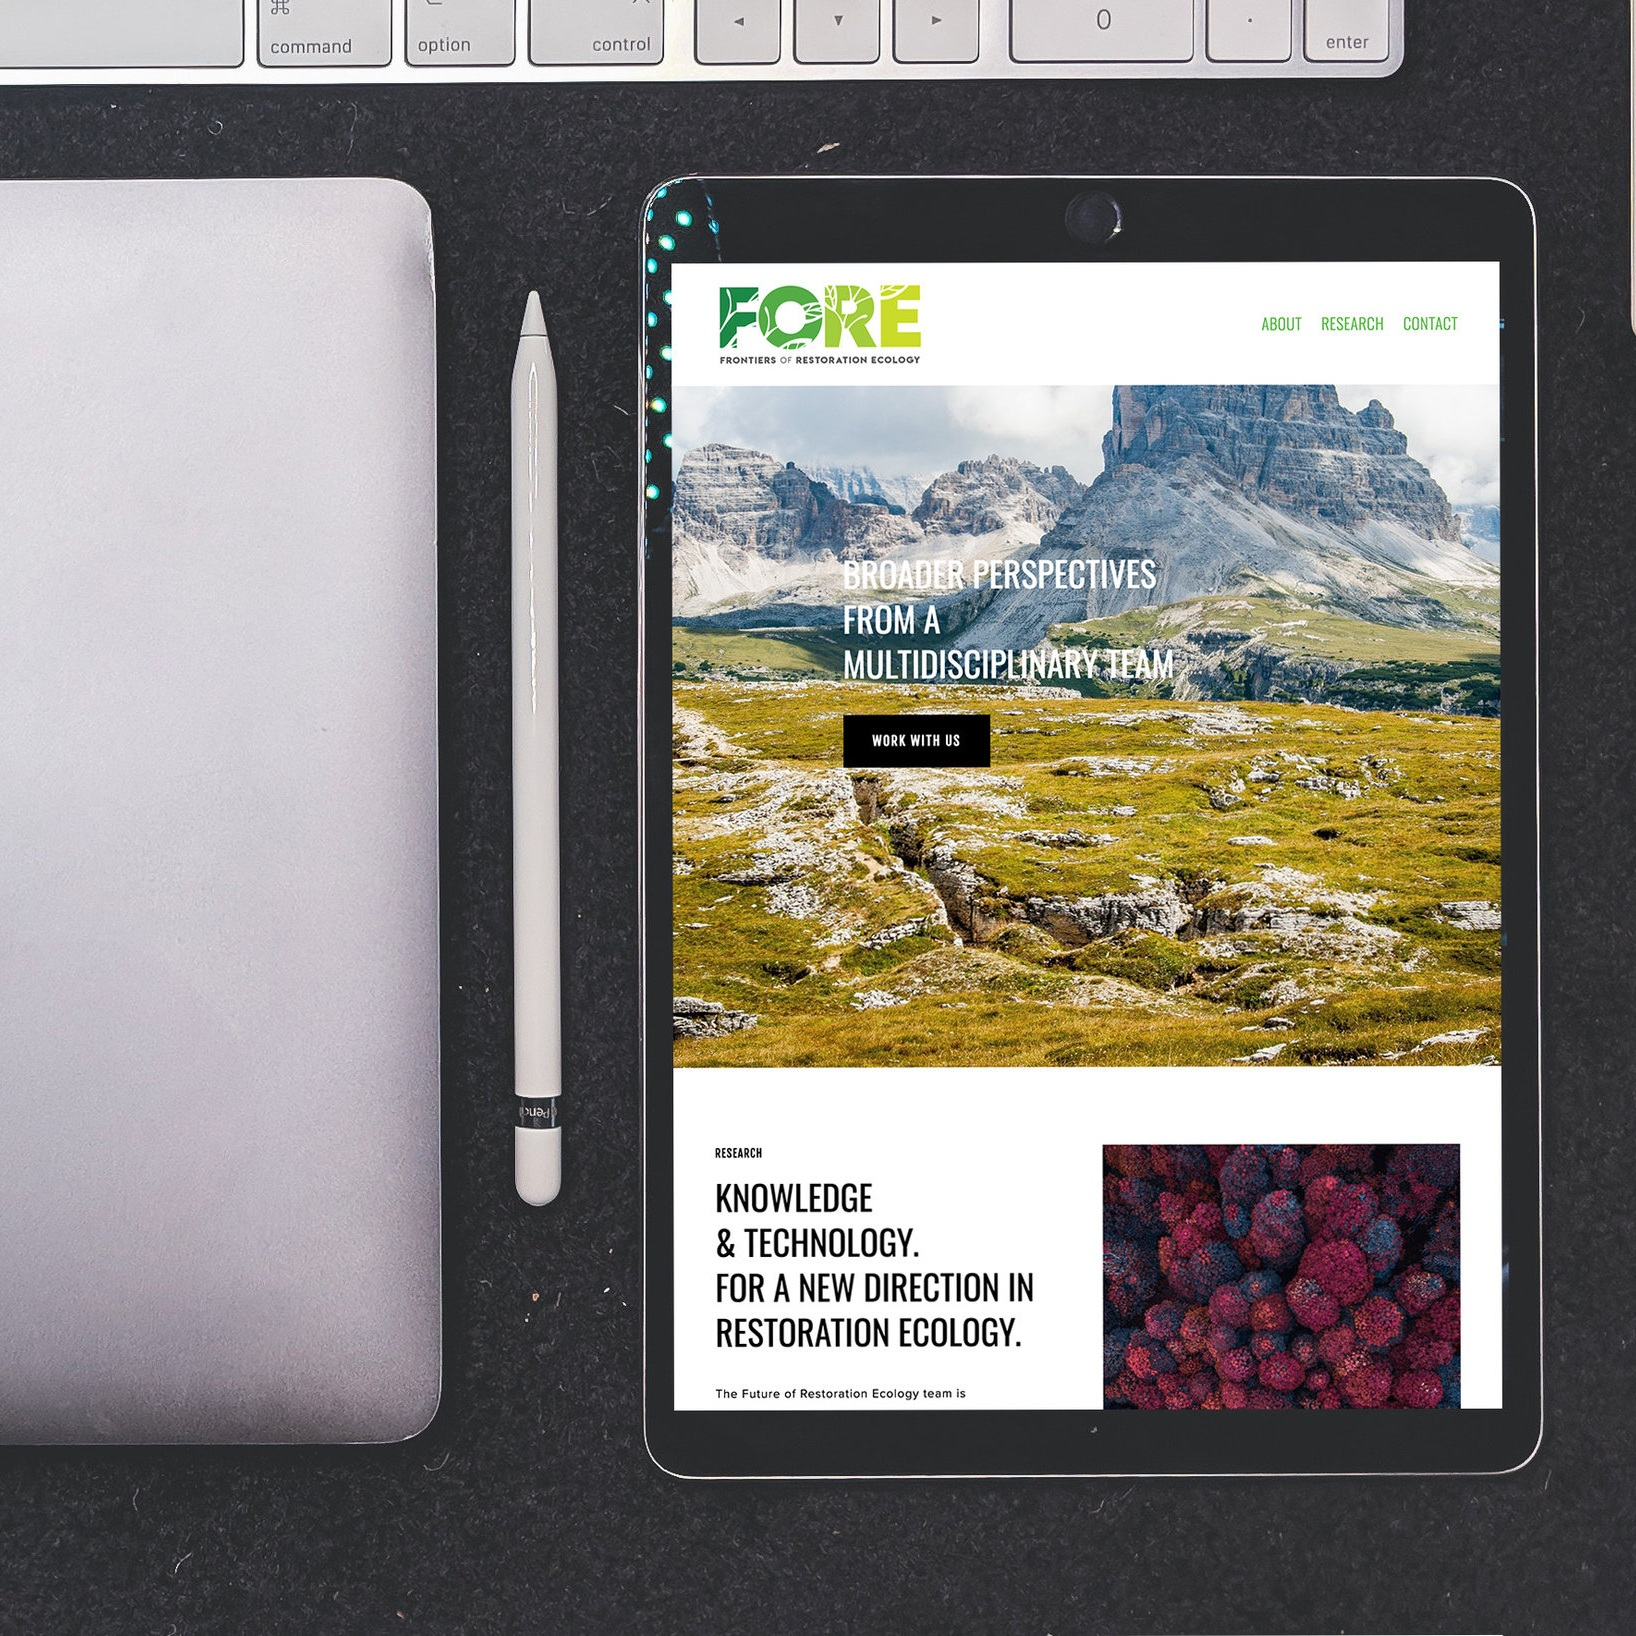 FRONTIERS OF RESTORATION ECOLOGY - Website design & build in Squarespace, SEO, copy proofingAgency: Faction Co.